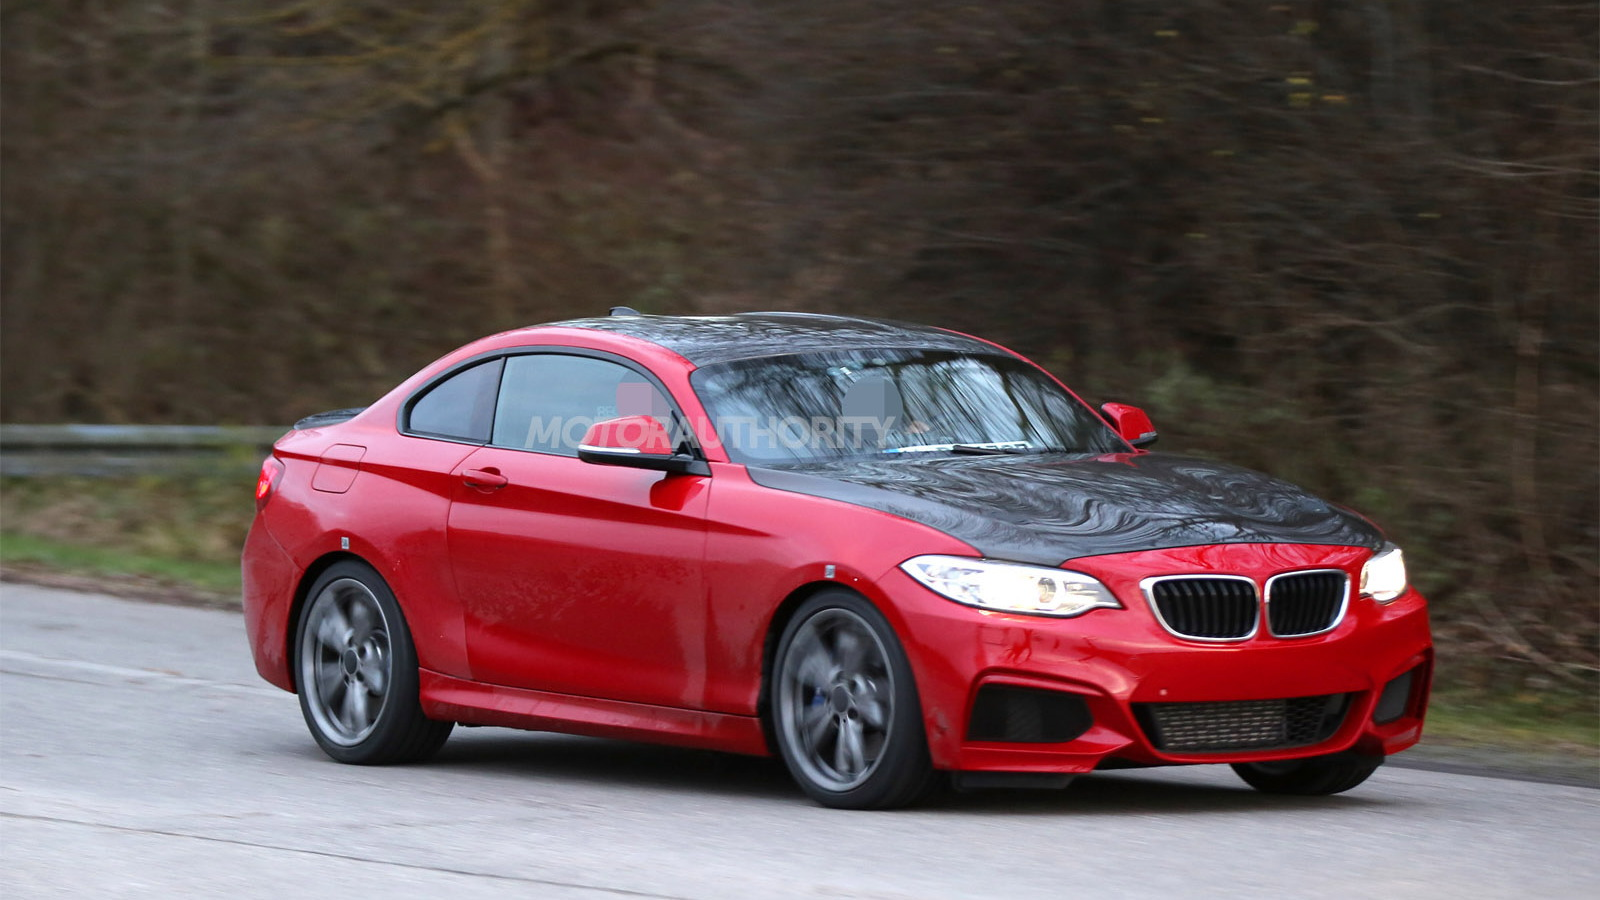 Mysterious BMW prototype spy shots